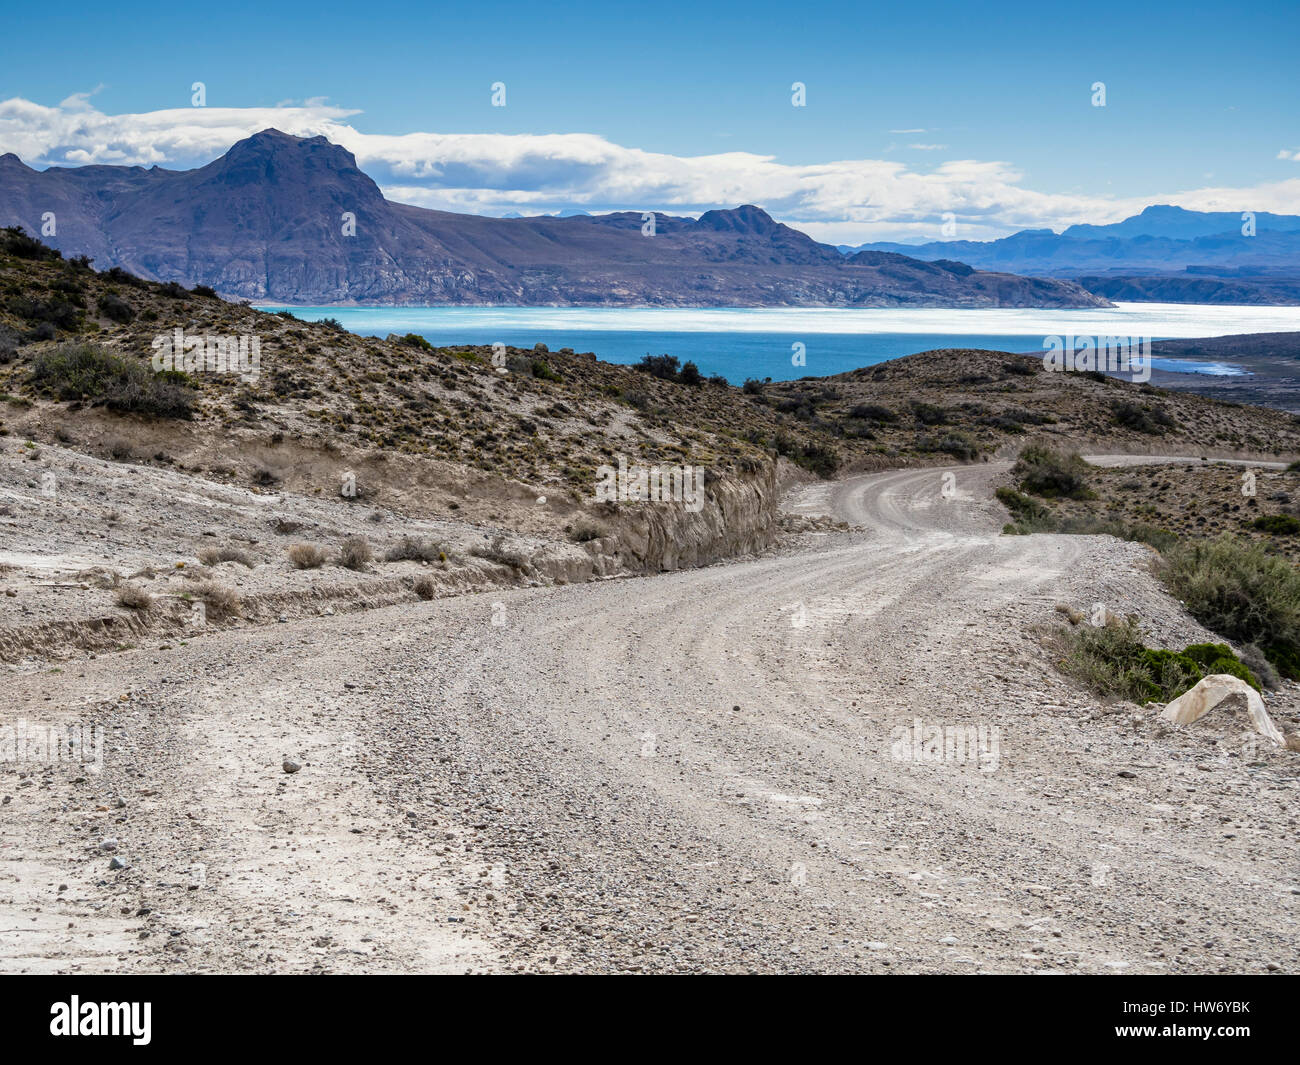 Gravel road from ruta 40 in Argentinia to border at Paso Roballos, lake Ghio, Patagonia, Argentinia - Stock Image